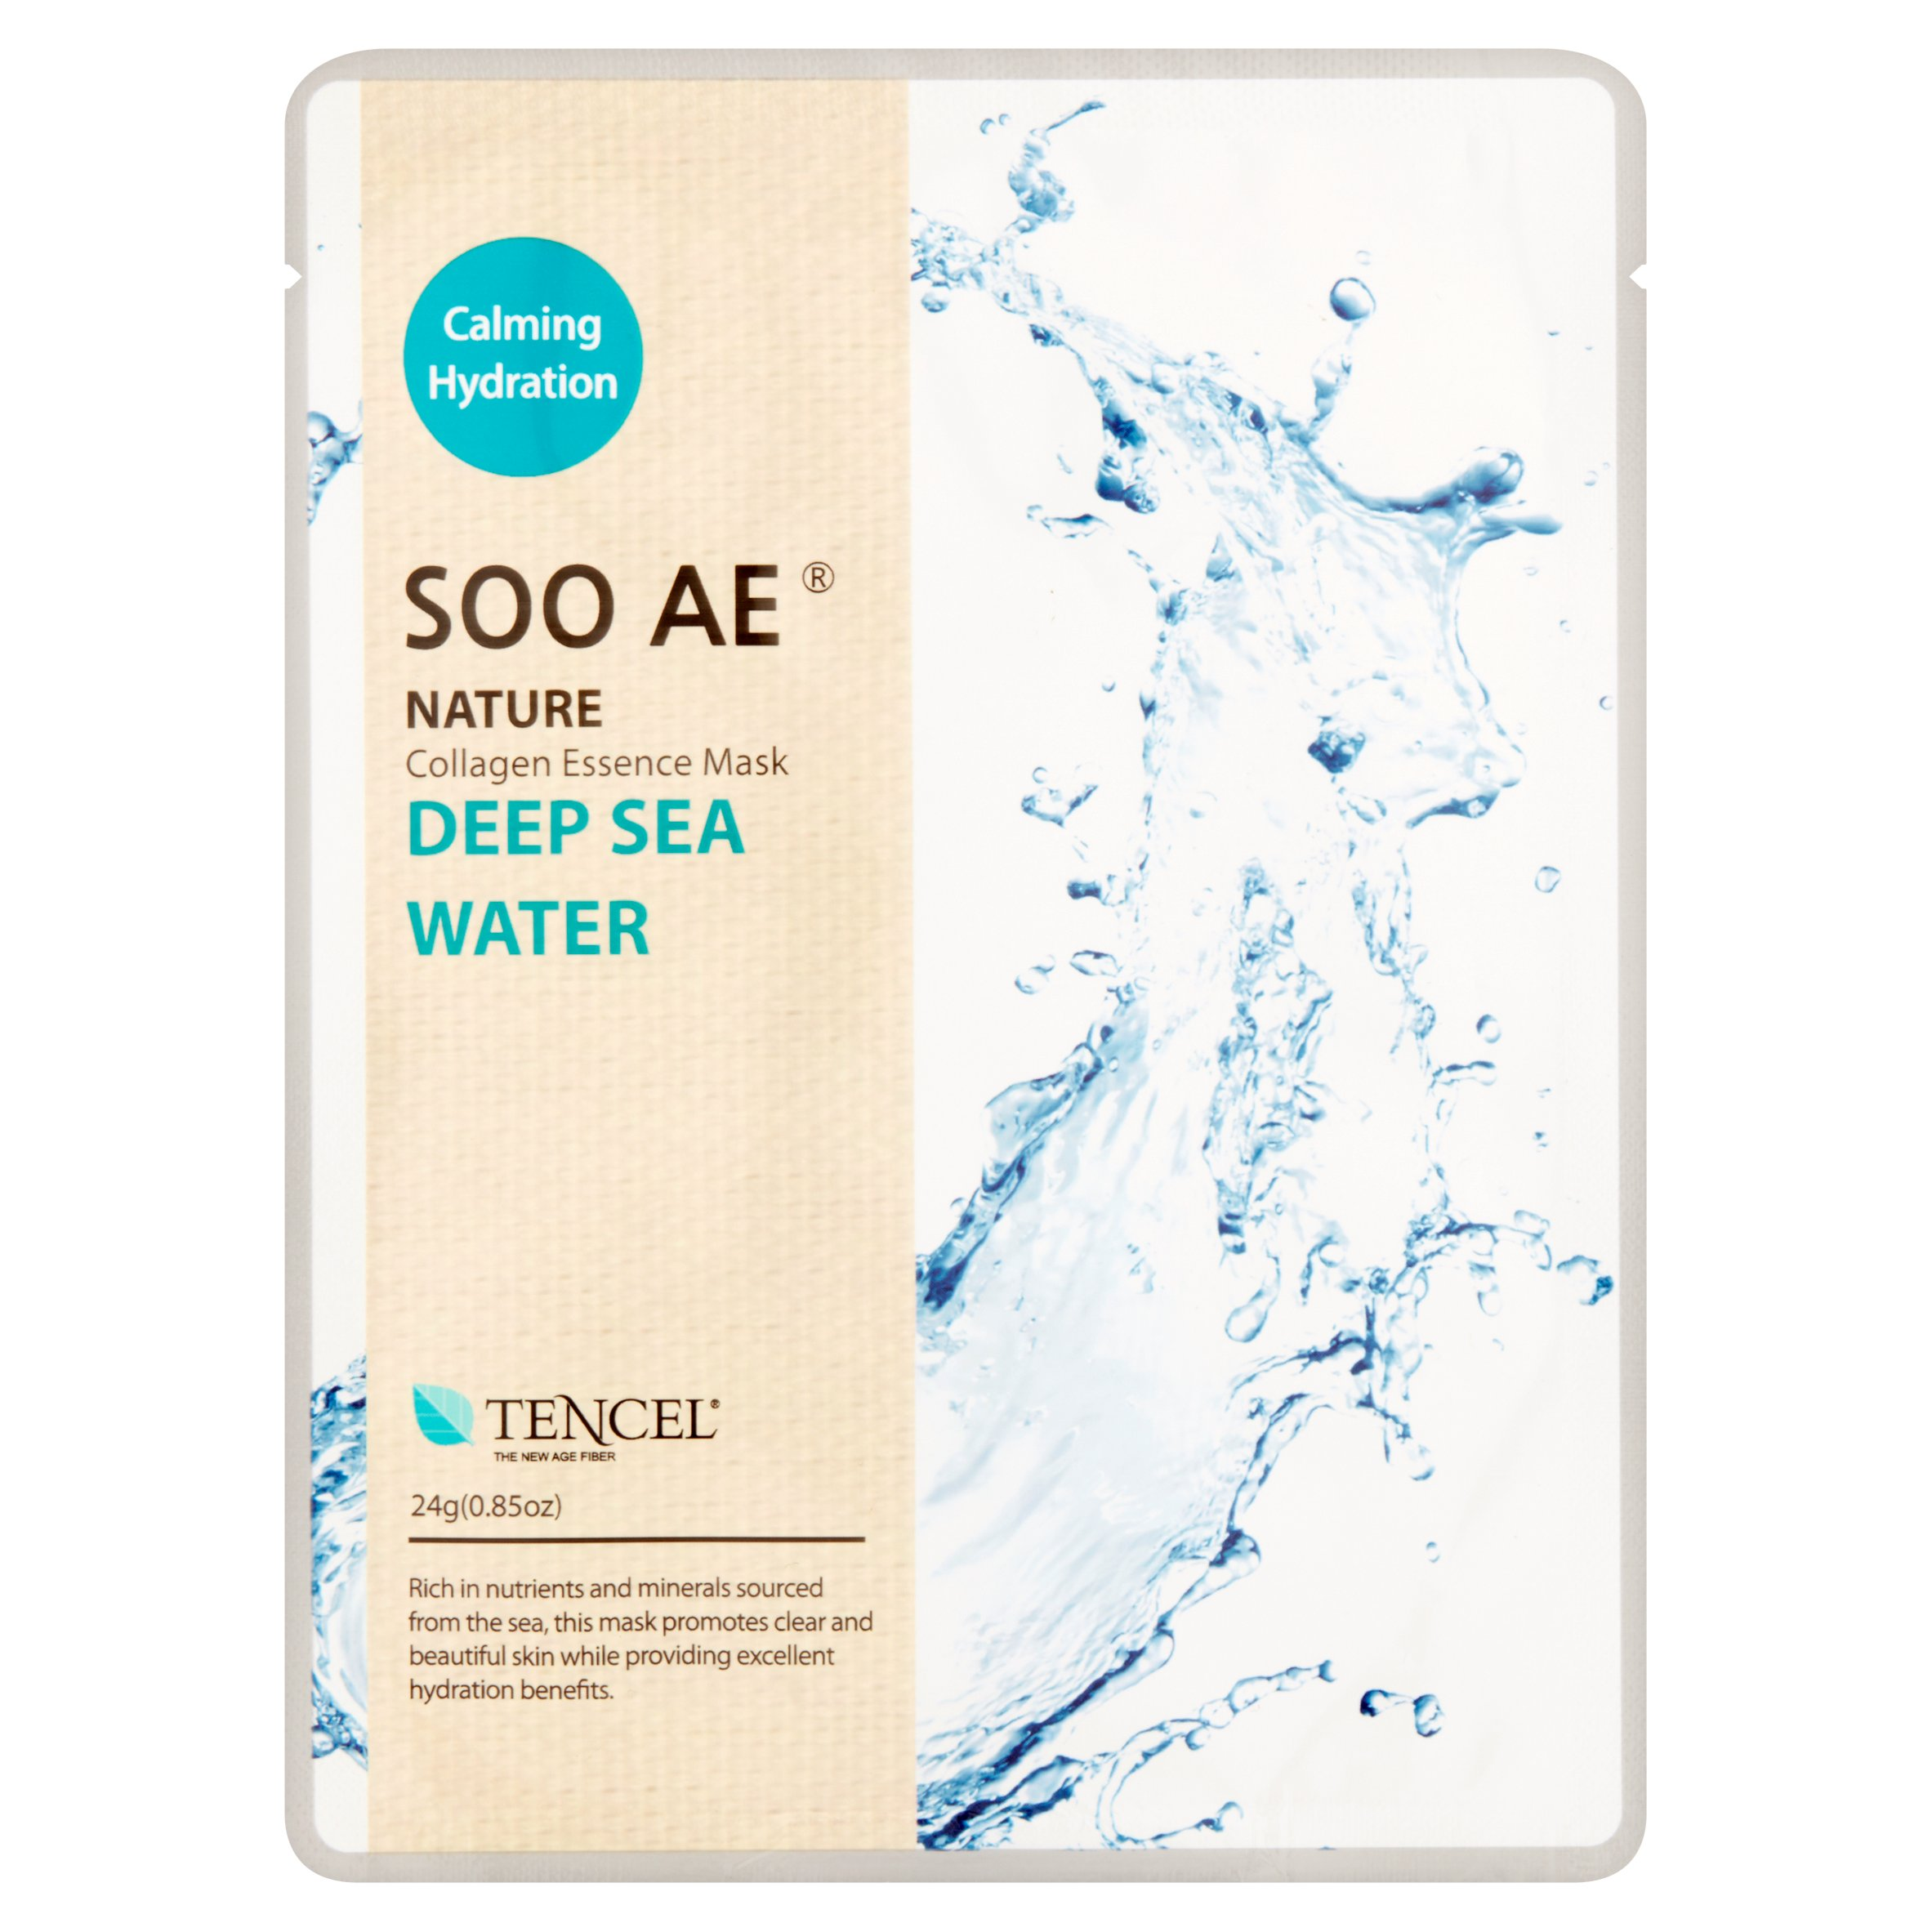 Soo Ae Nature Deep Sea Water Collagen Essence Mask, 0.85 oz